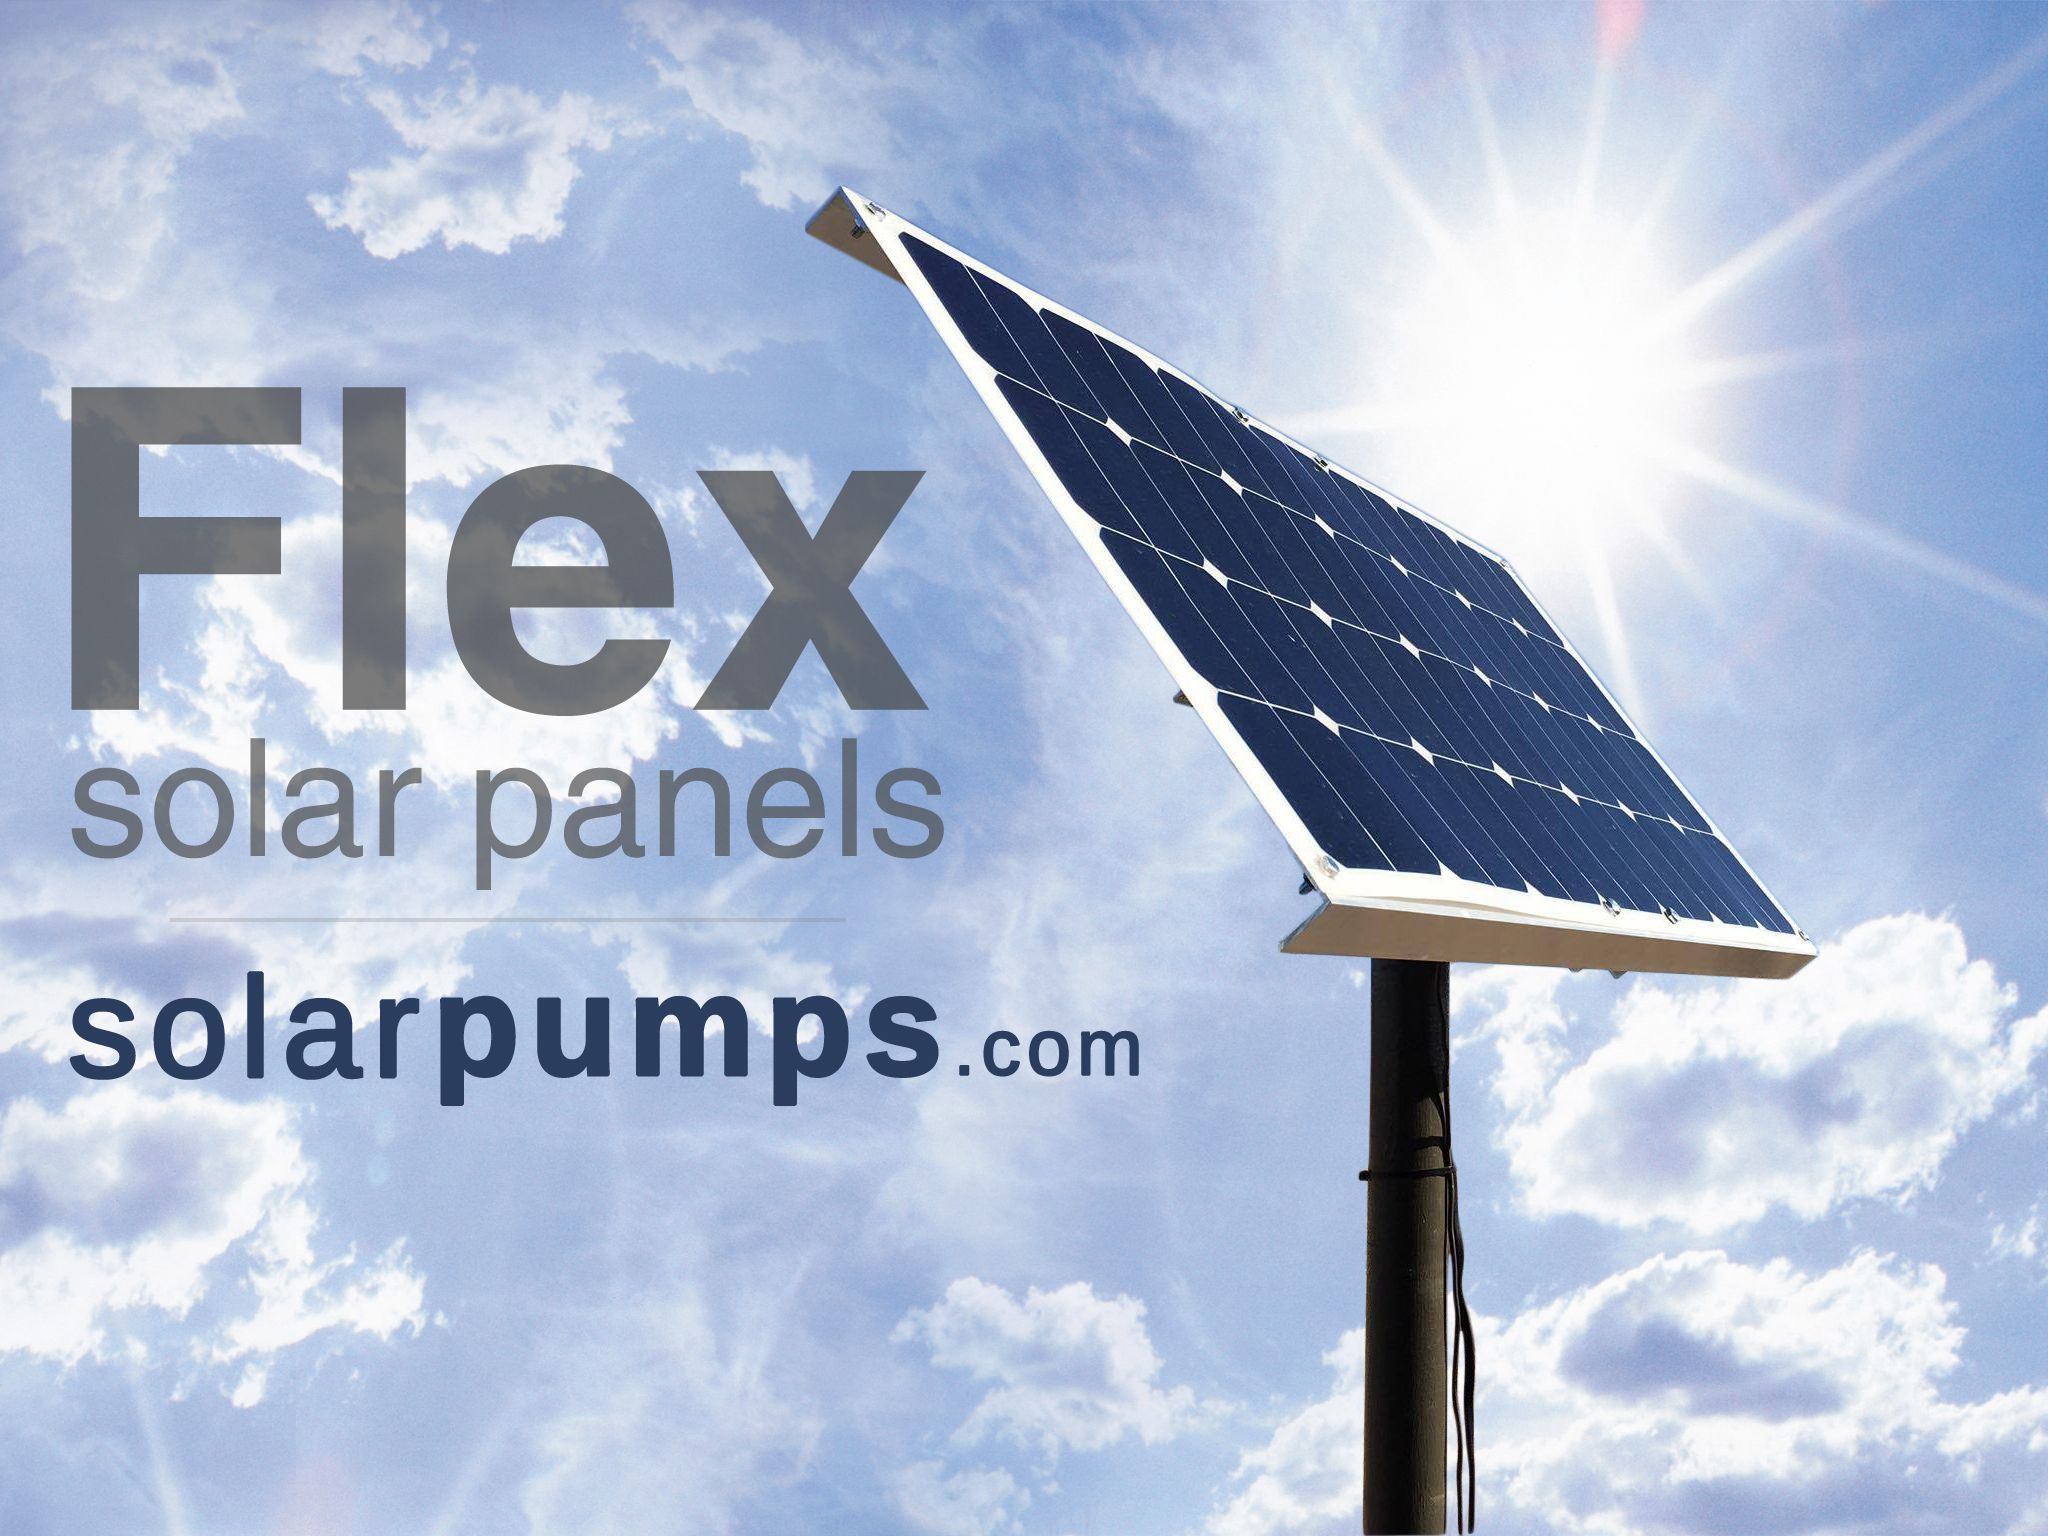 These New 90w Flexible Solar Panels Weigh Only 3lbs Under 16lbs With Panel Mounts And Wiring Compared To Our Standard 8 Solar Facts Solar Water Pump Solar